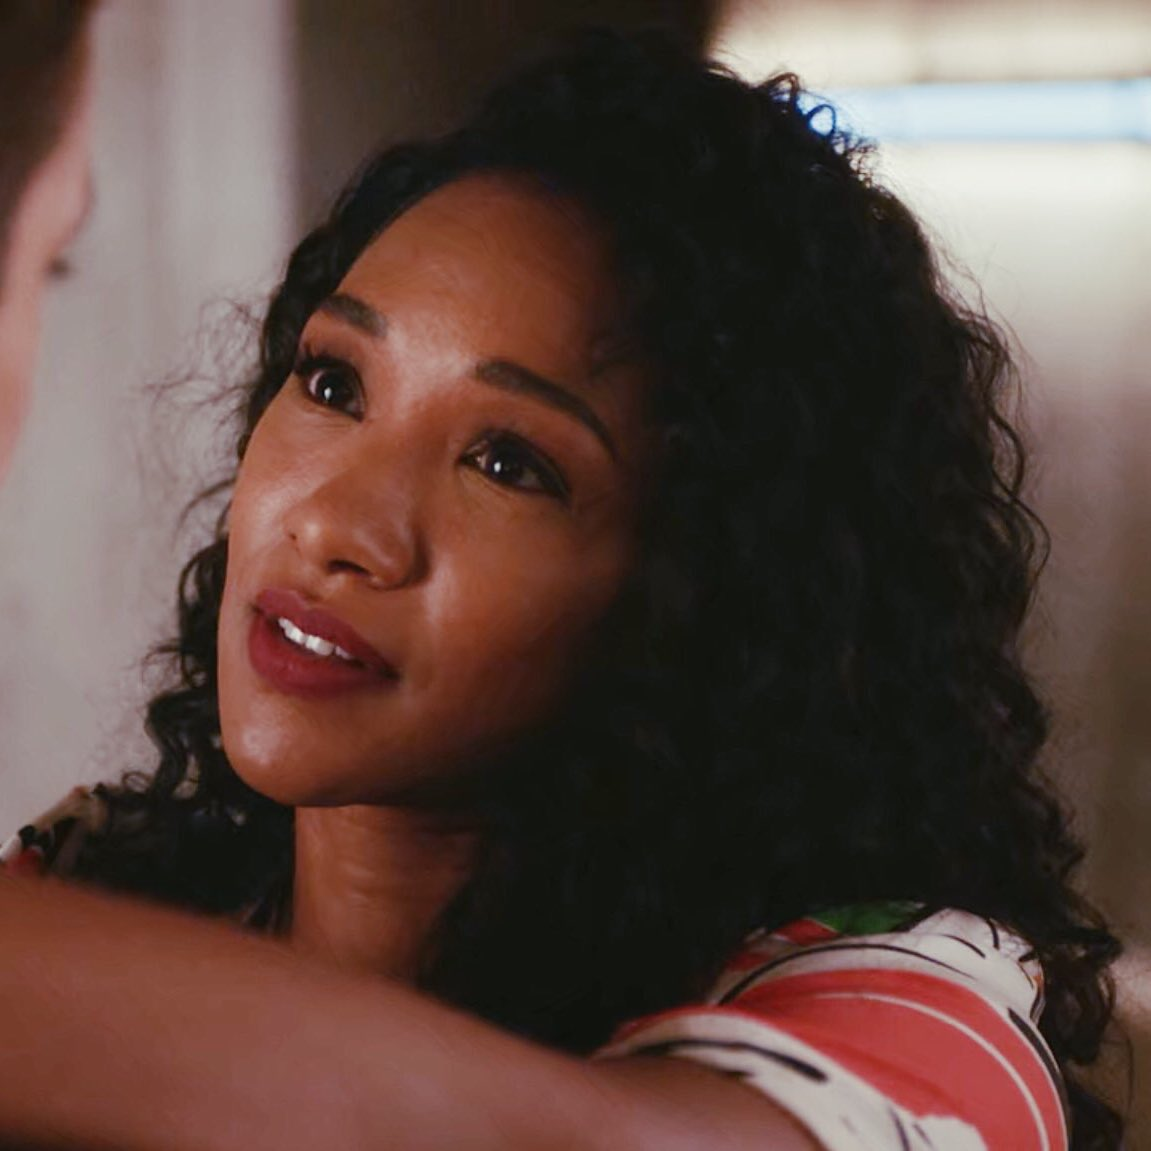 @CW_TheFlash @TheCW @FLASHtvwriters @EW sad how yall have made it to where Iris can only have her natural hair be shown in an episode where she's going to vacation therefore making it seem like she wears her curls as a casual look when it should be apart of all her fashion looks. pic.twitter.com/JacMIQMKSV